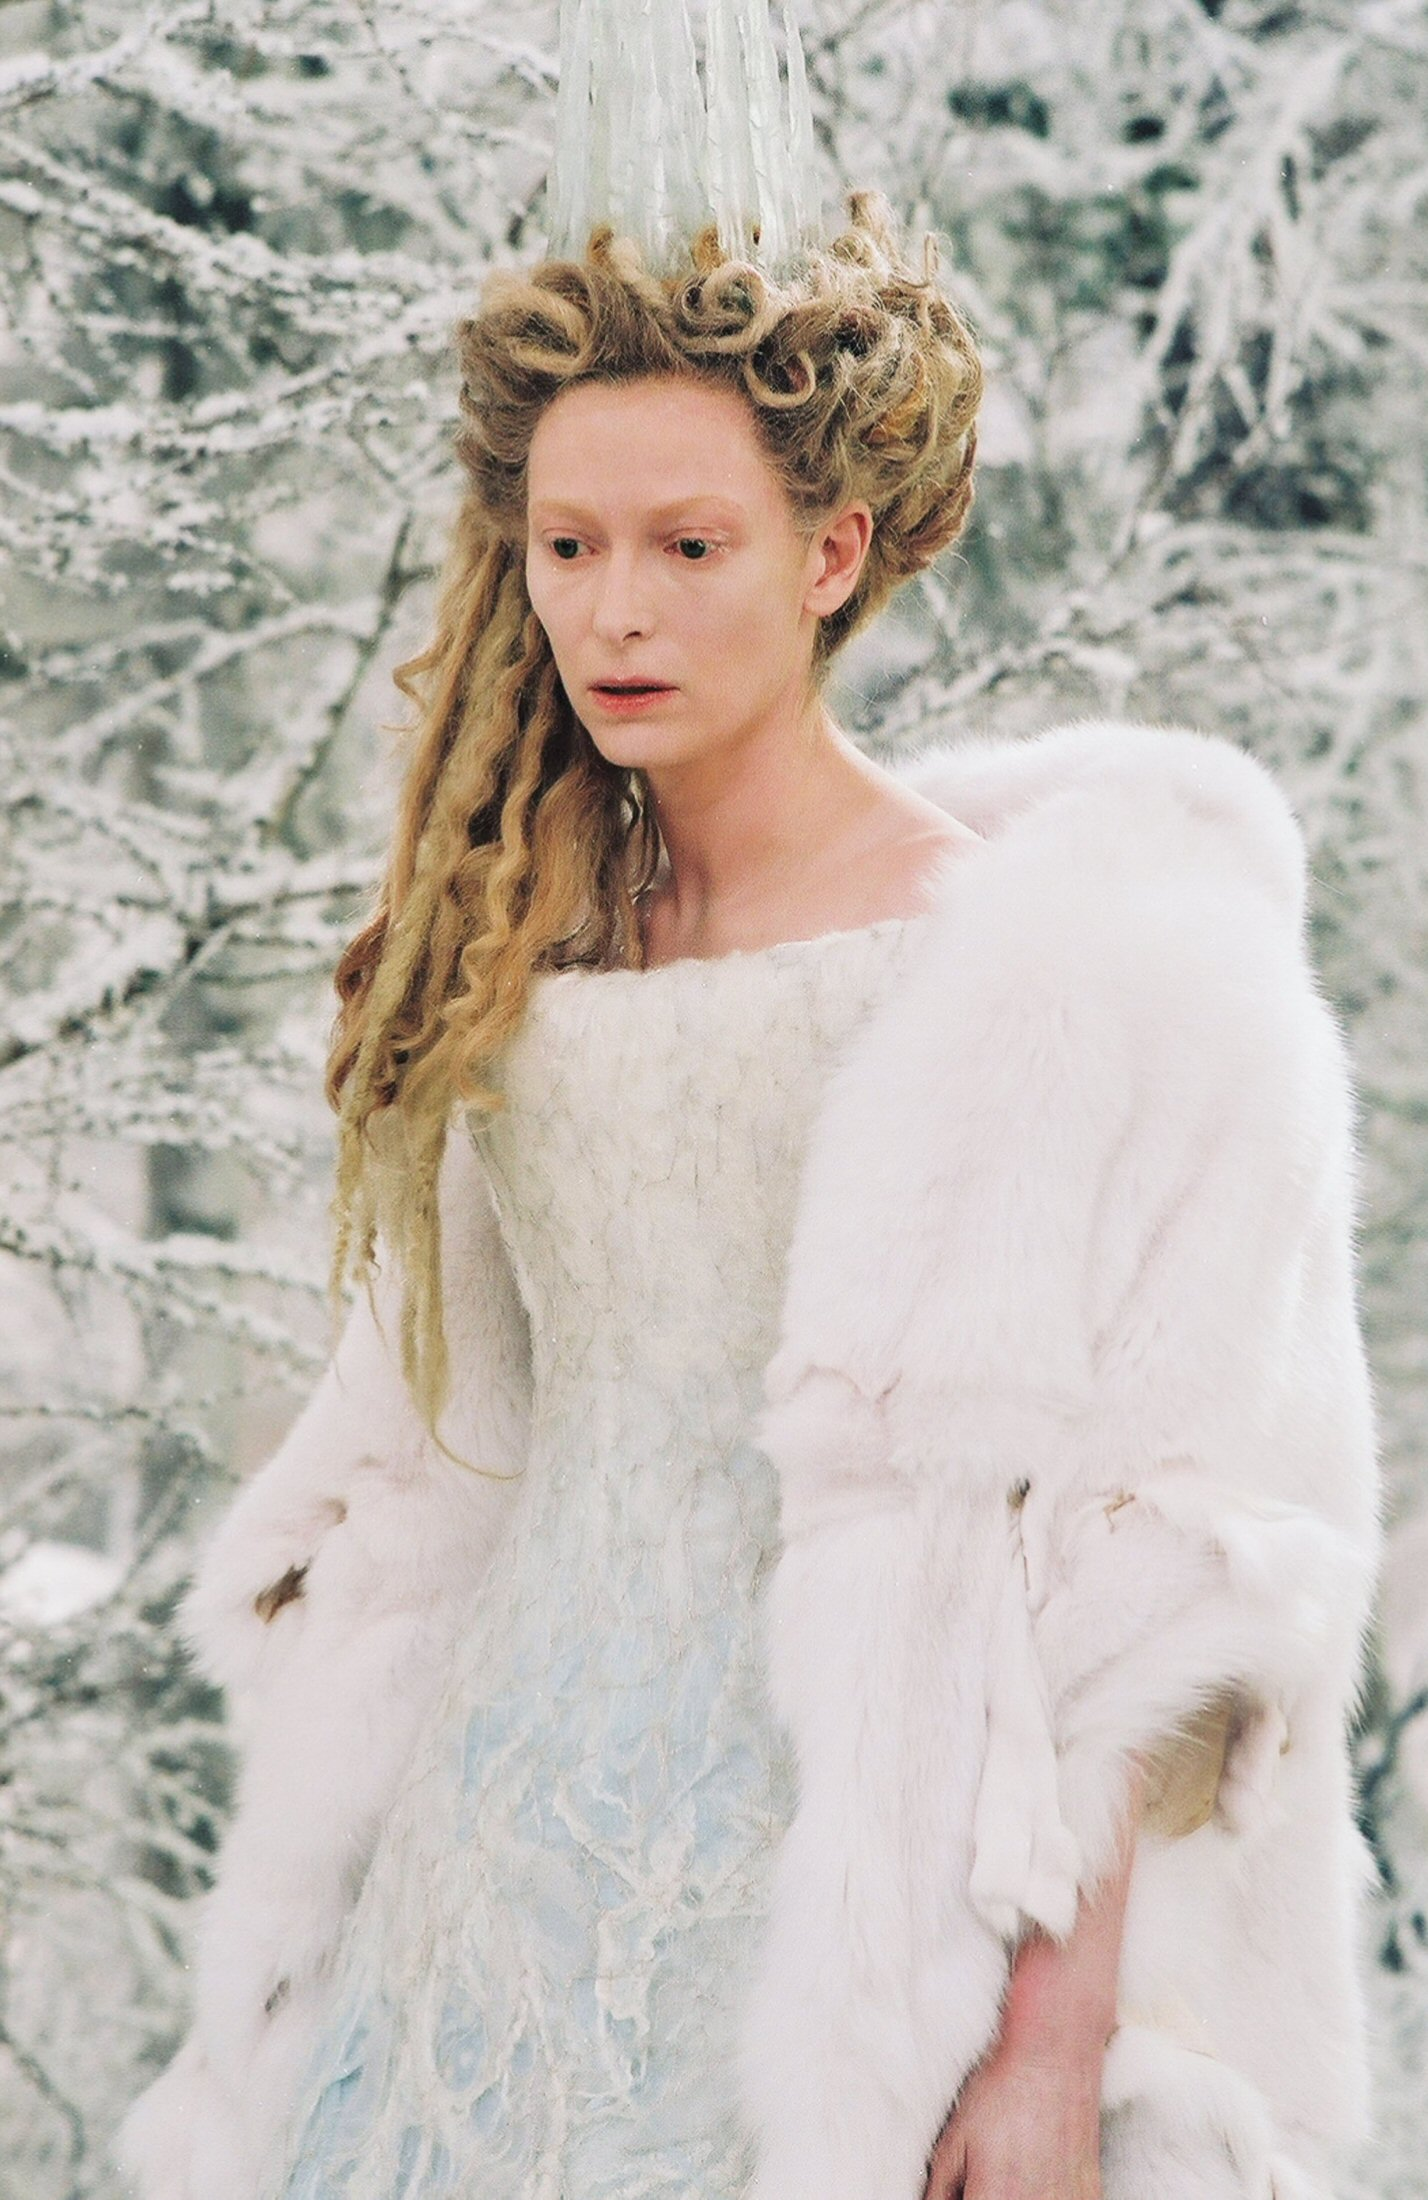 Bildresultat för the white witch narnia